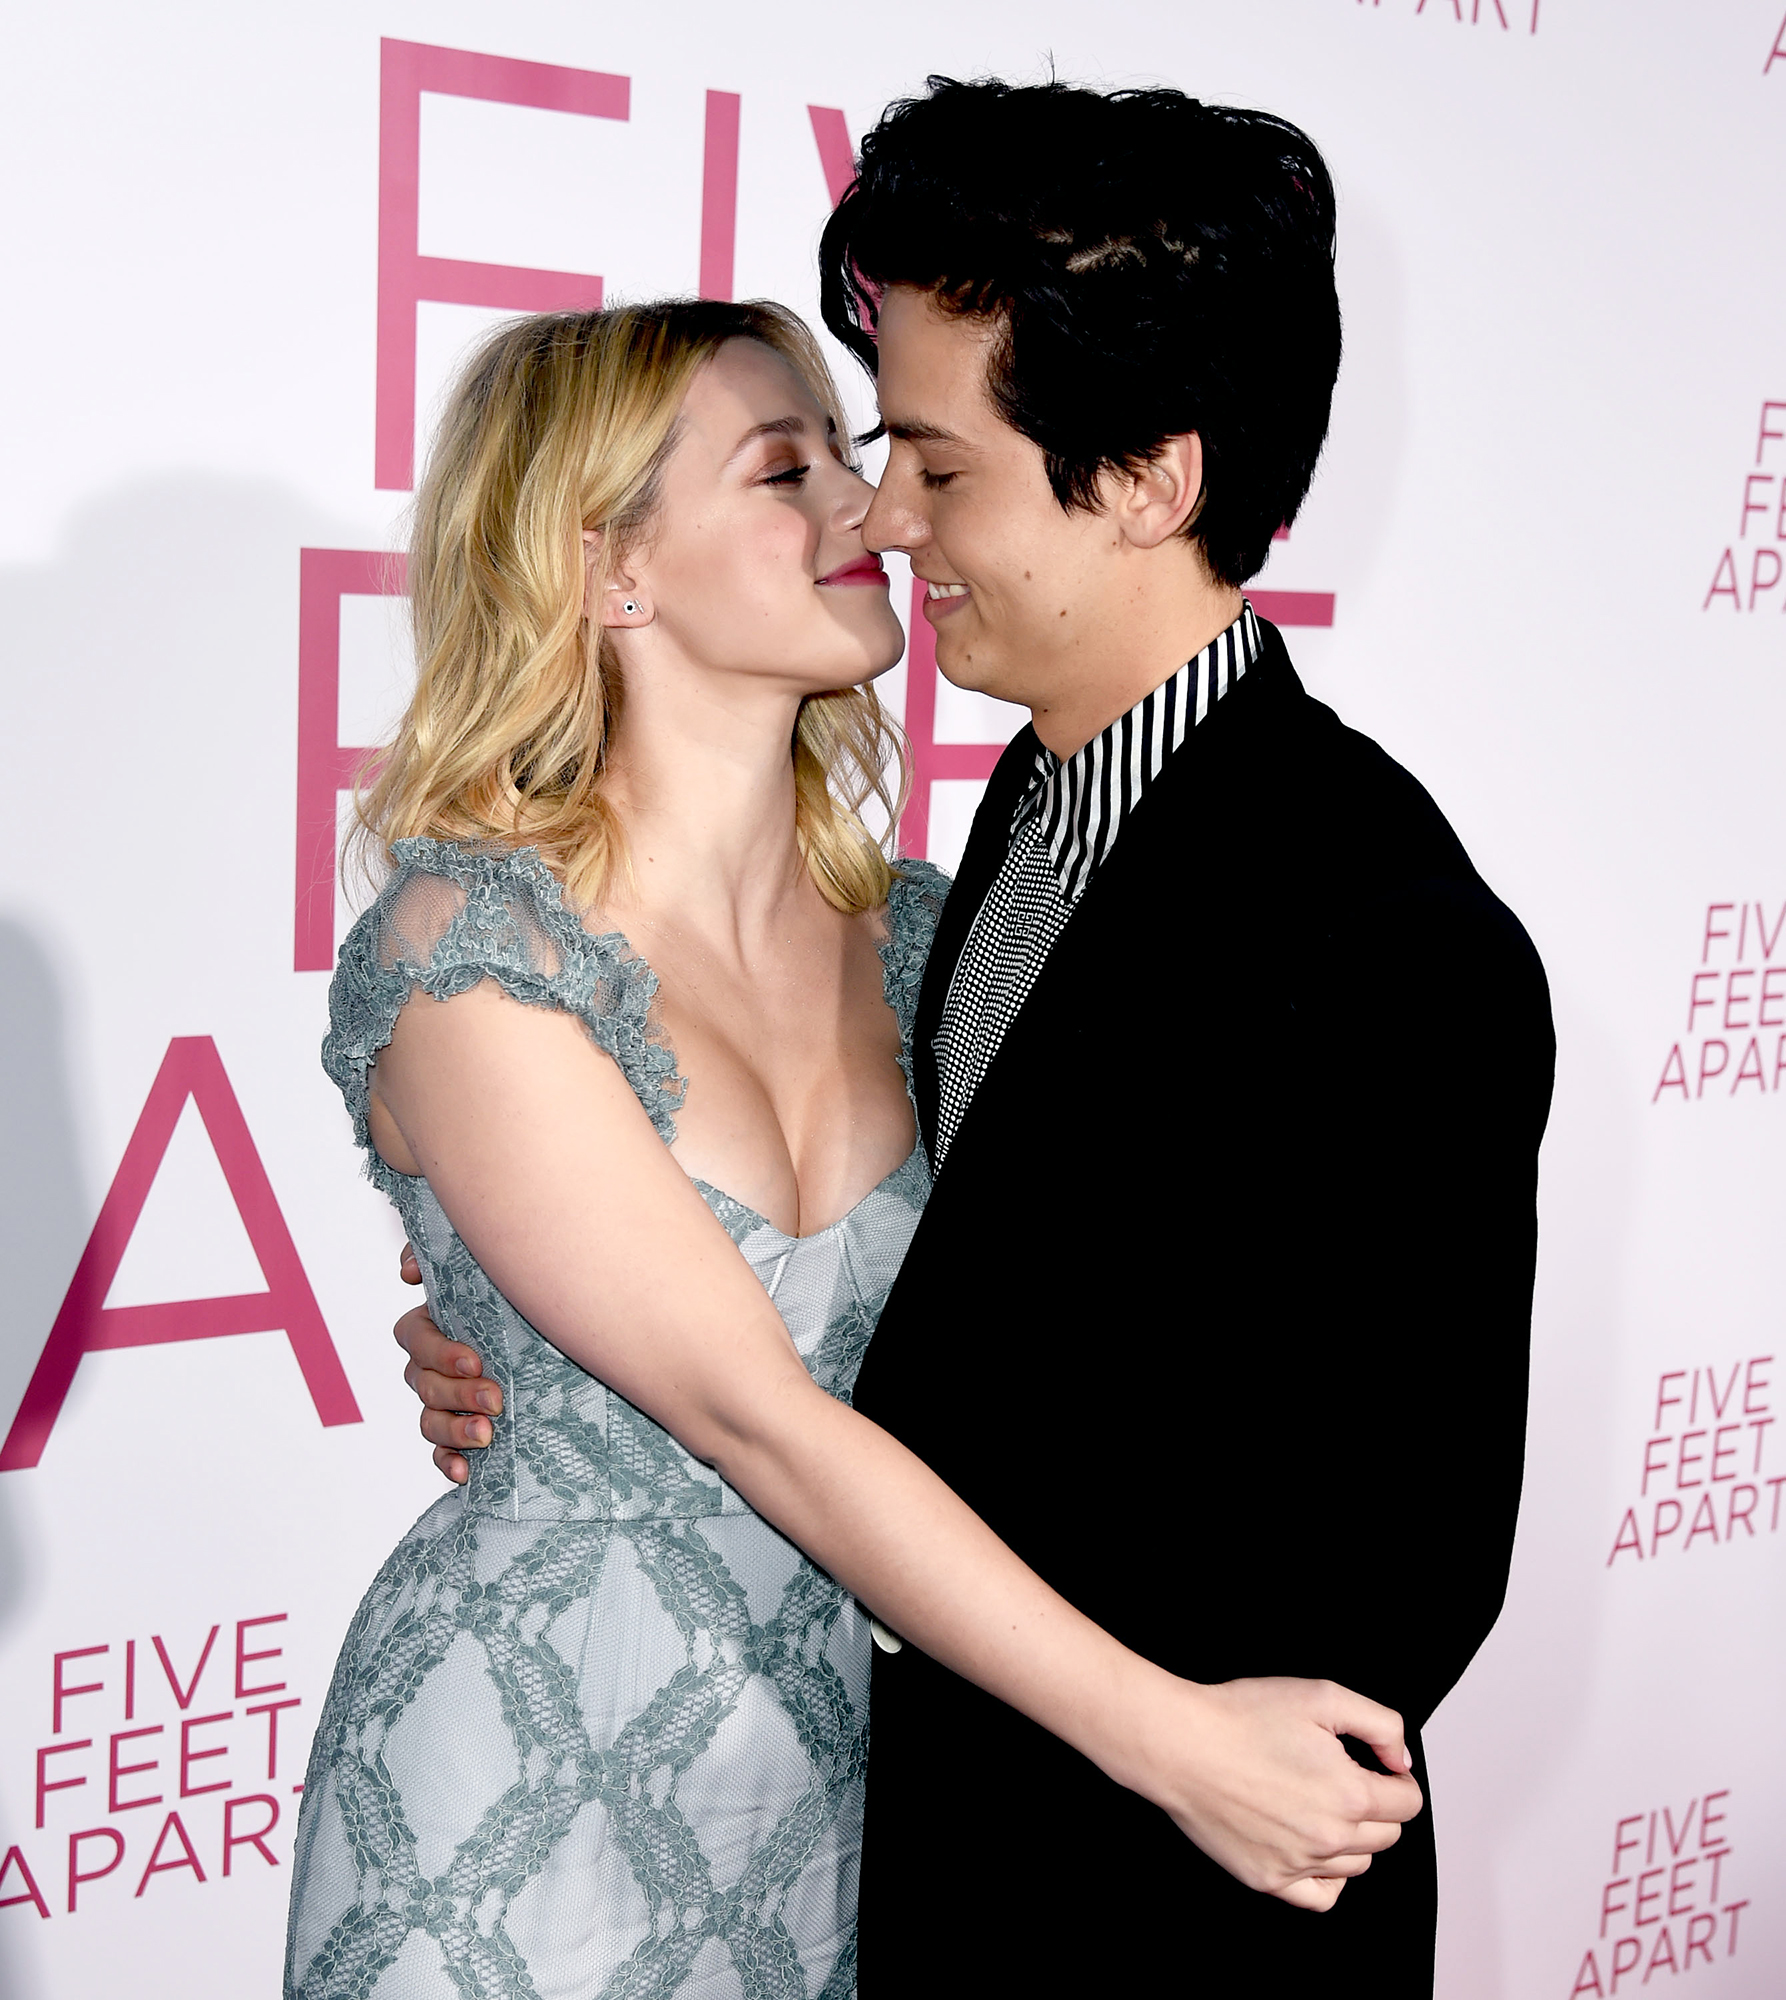 Lili Reinhart and Cole Sprouse Relationship Timeline - The pair looked so in love at the premiere of Sprouse's film Five Feet Apart in March 2019.